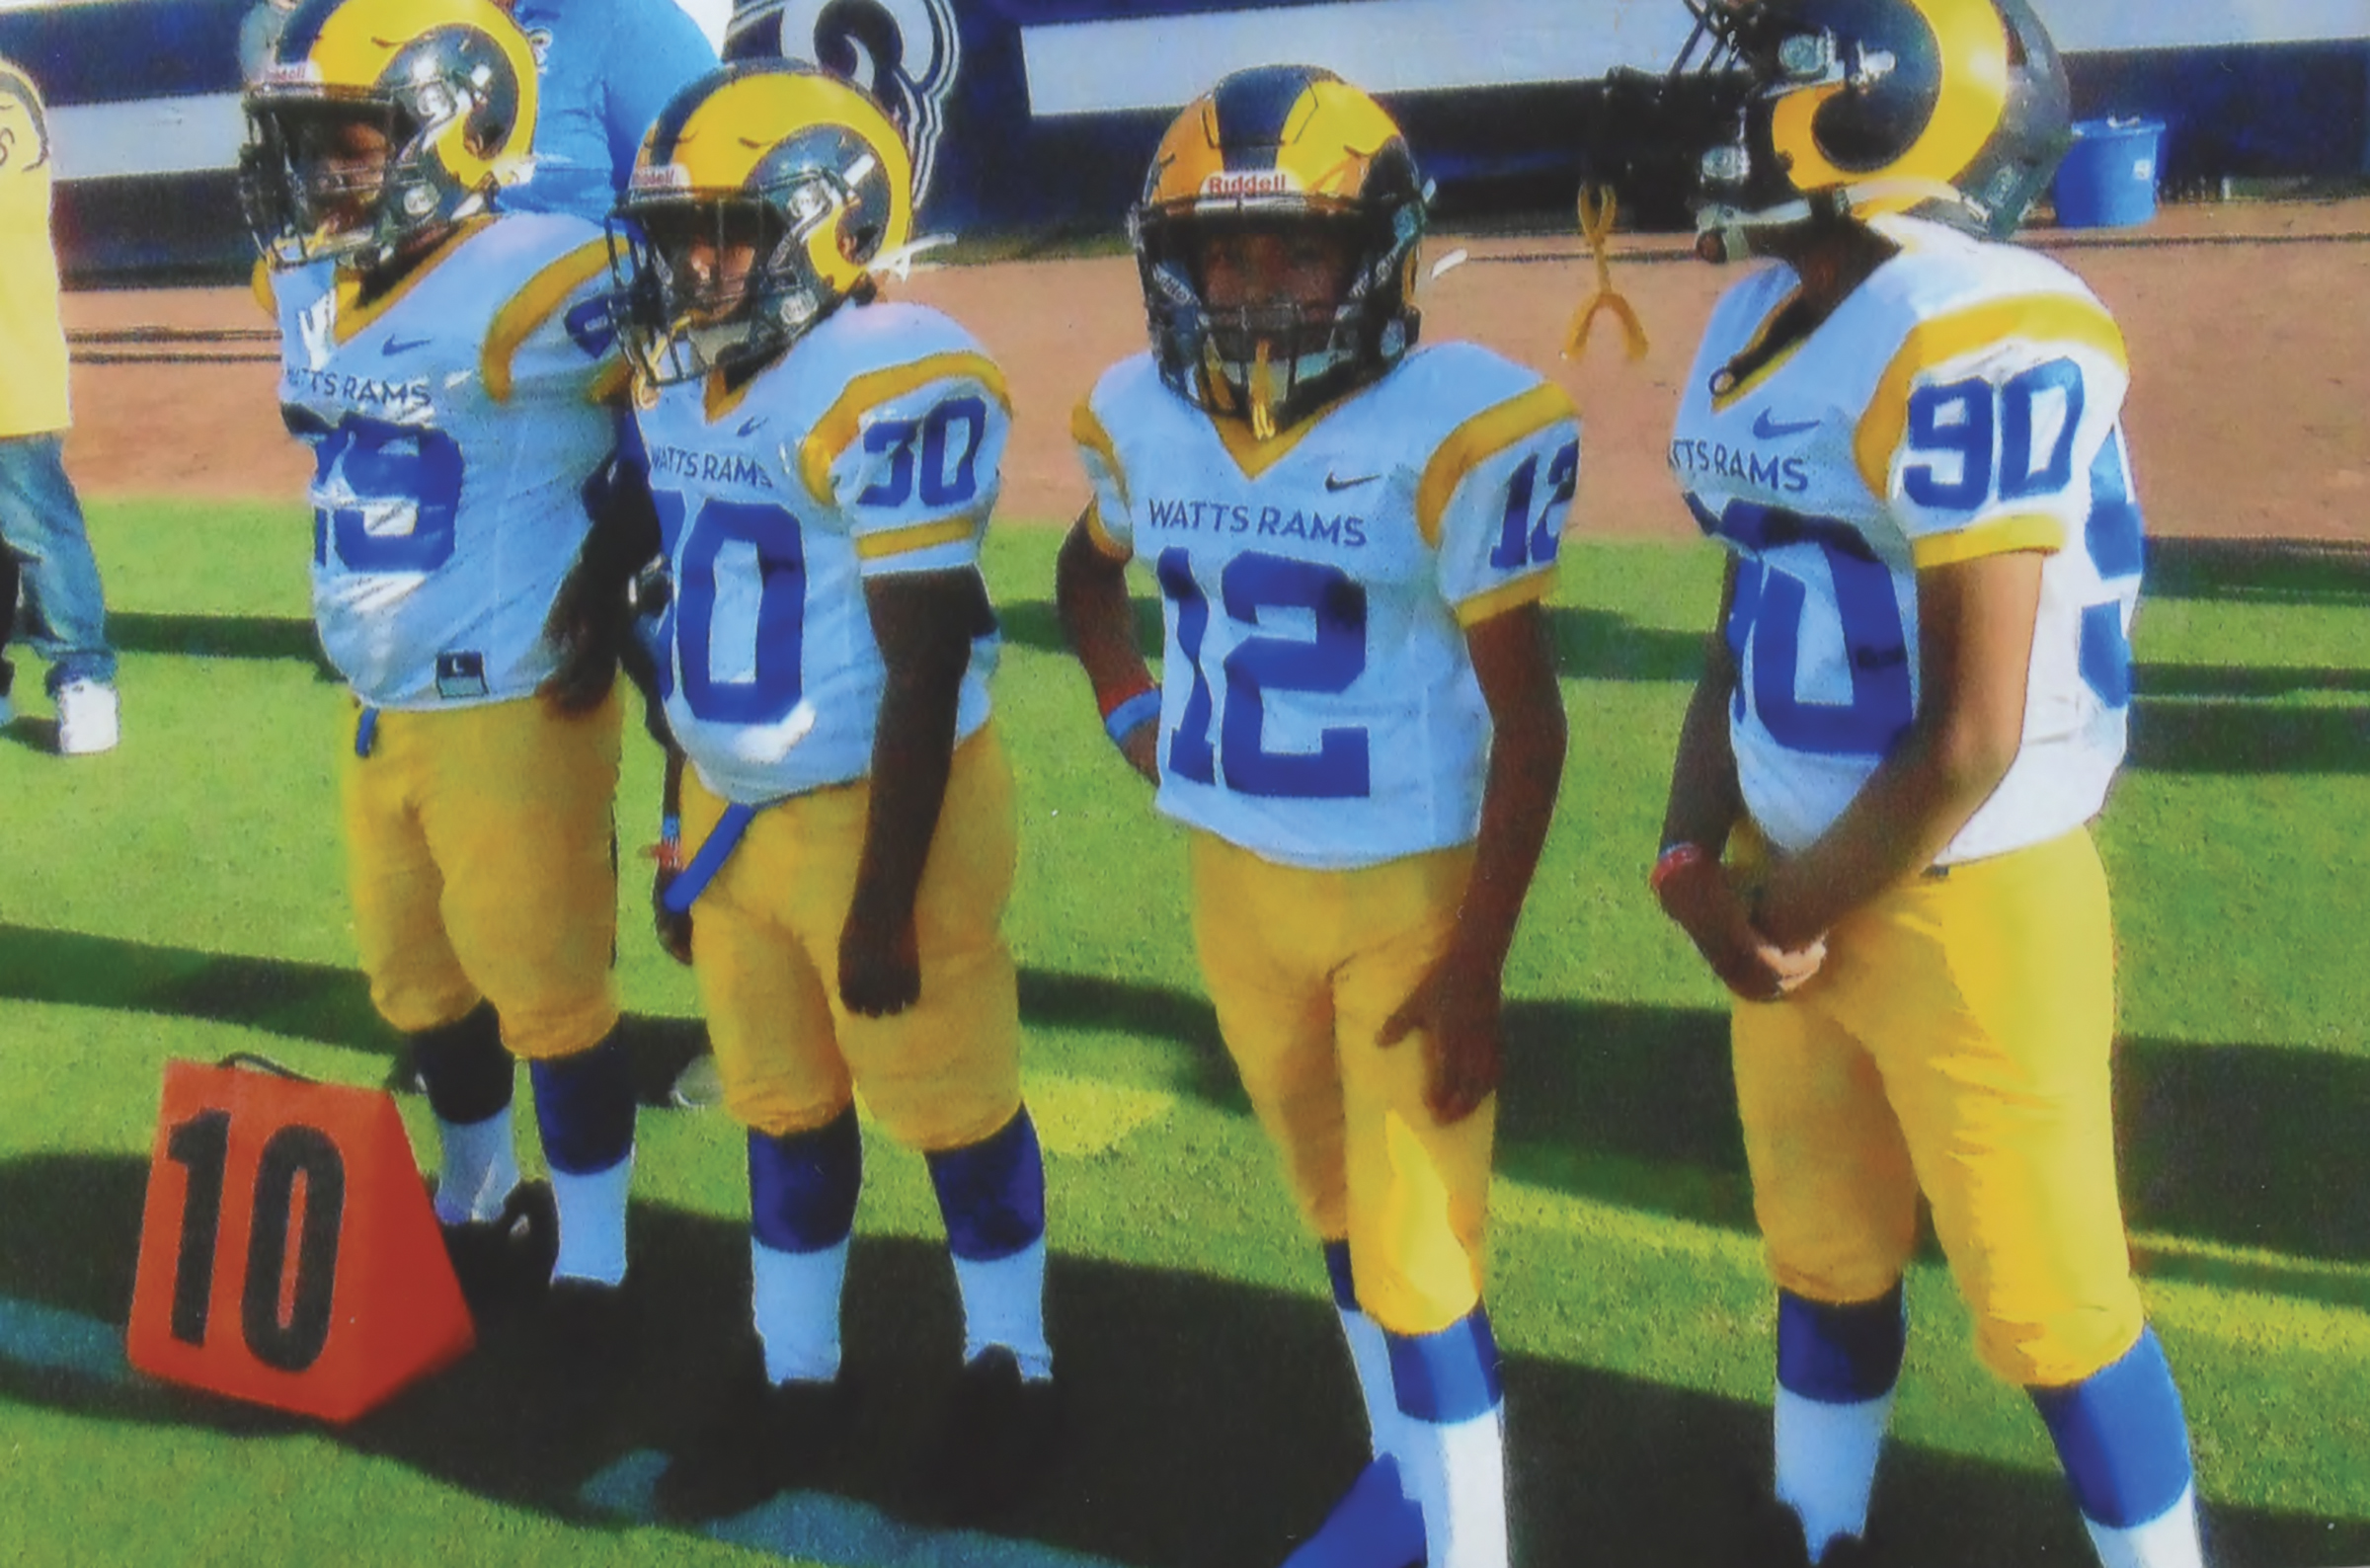 Watts Rams enjoy sites after playing on the Coliseum field. (Earl Heath Photo)